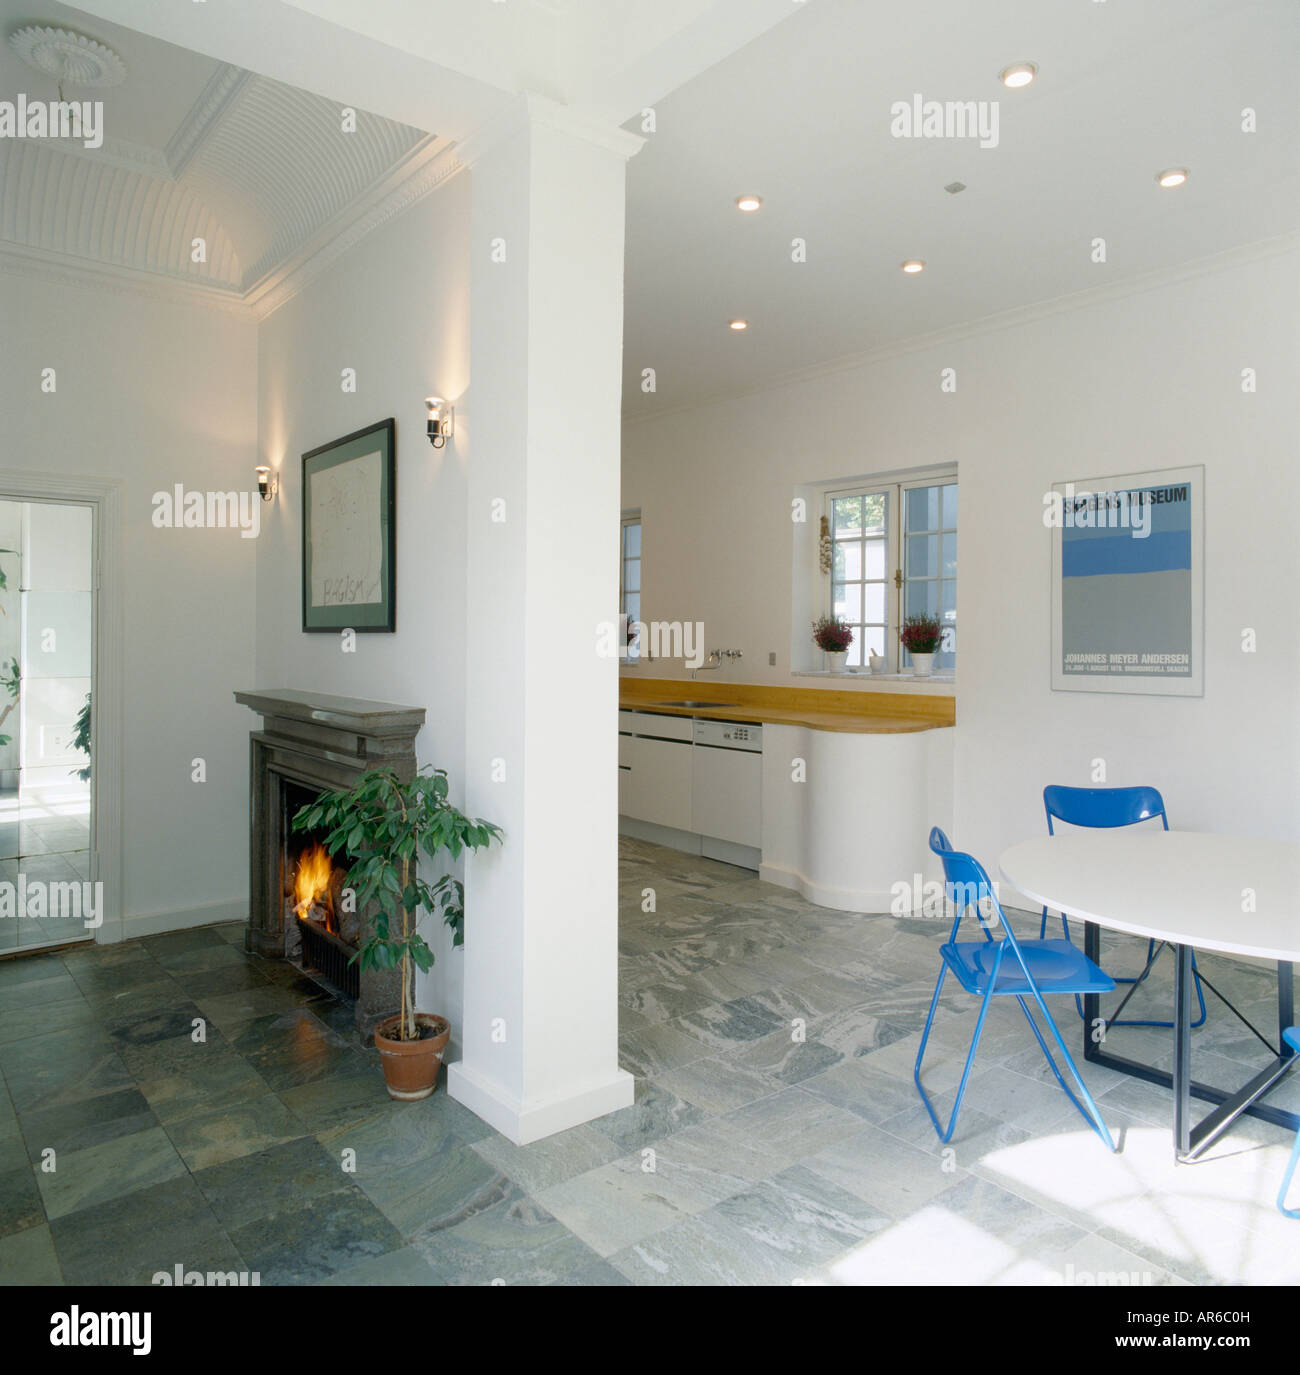 Fireplace On Dividing Wall Of Openplan Kitchen Dining Room With Grey Floor Tiles And Blue Chairs White Table